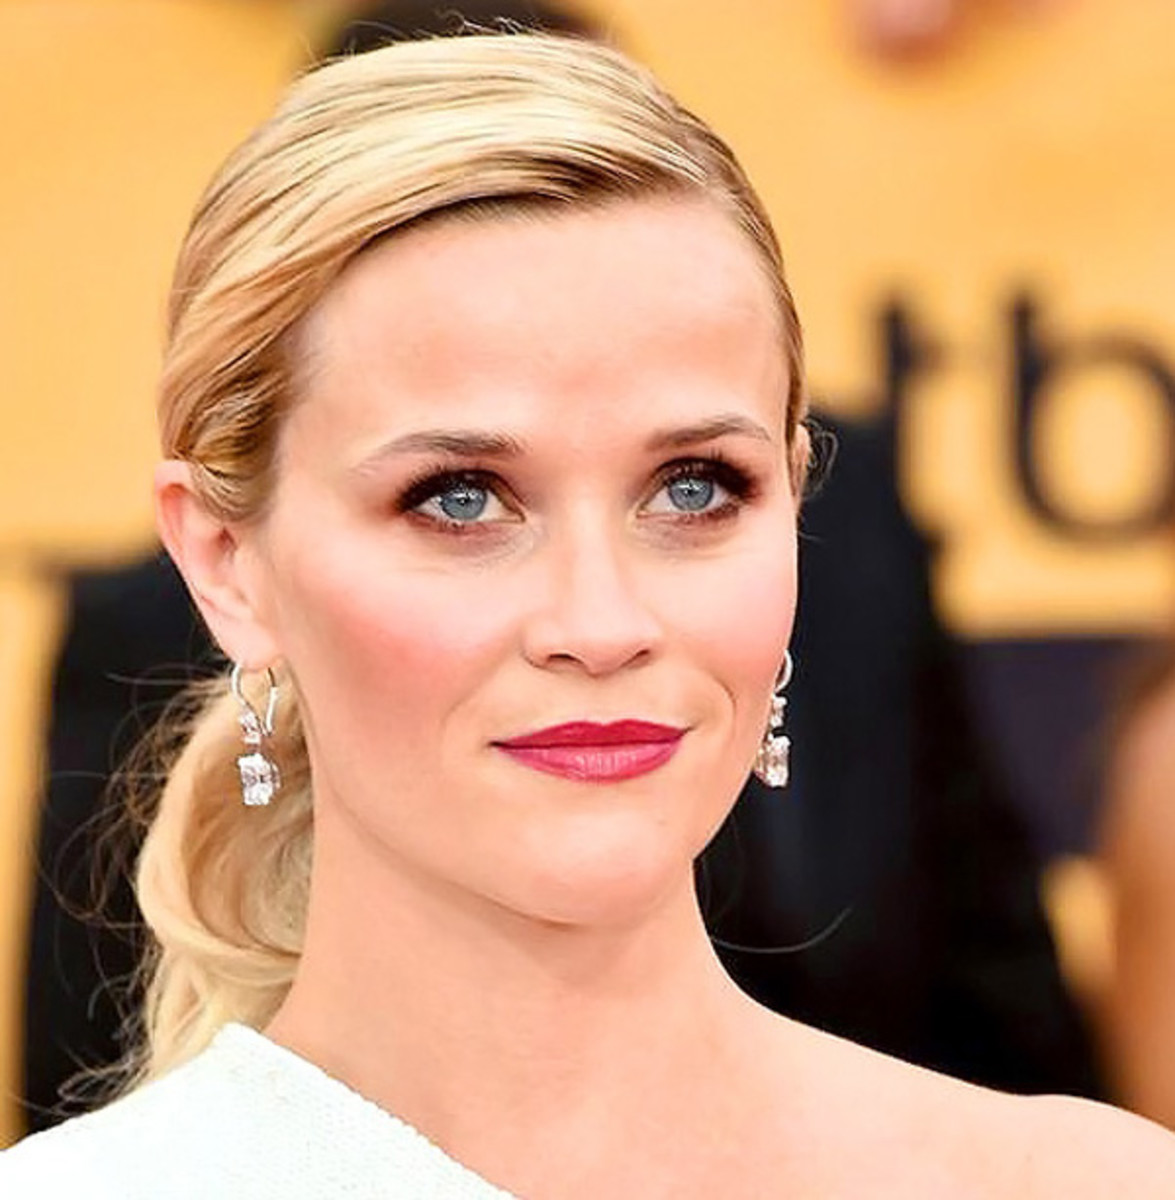 Reese Witherspoon_bordeaux makeup for blue eyes_SAG Awards 2015